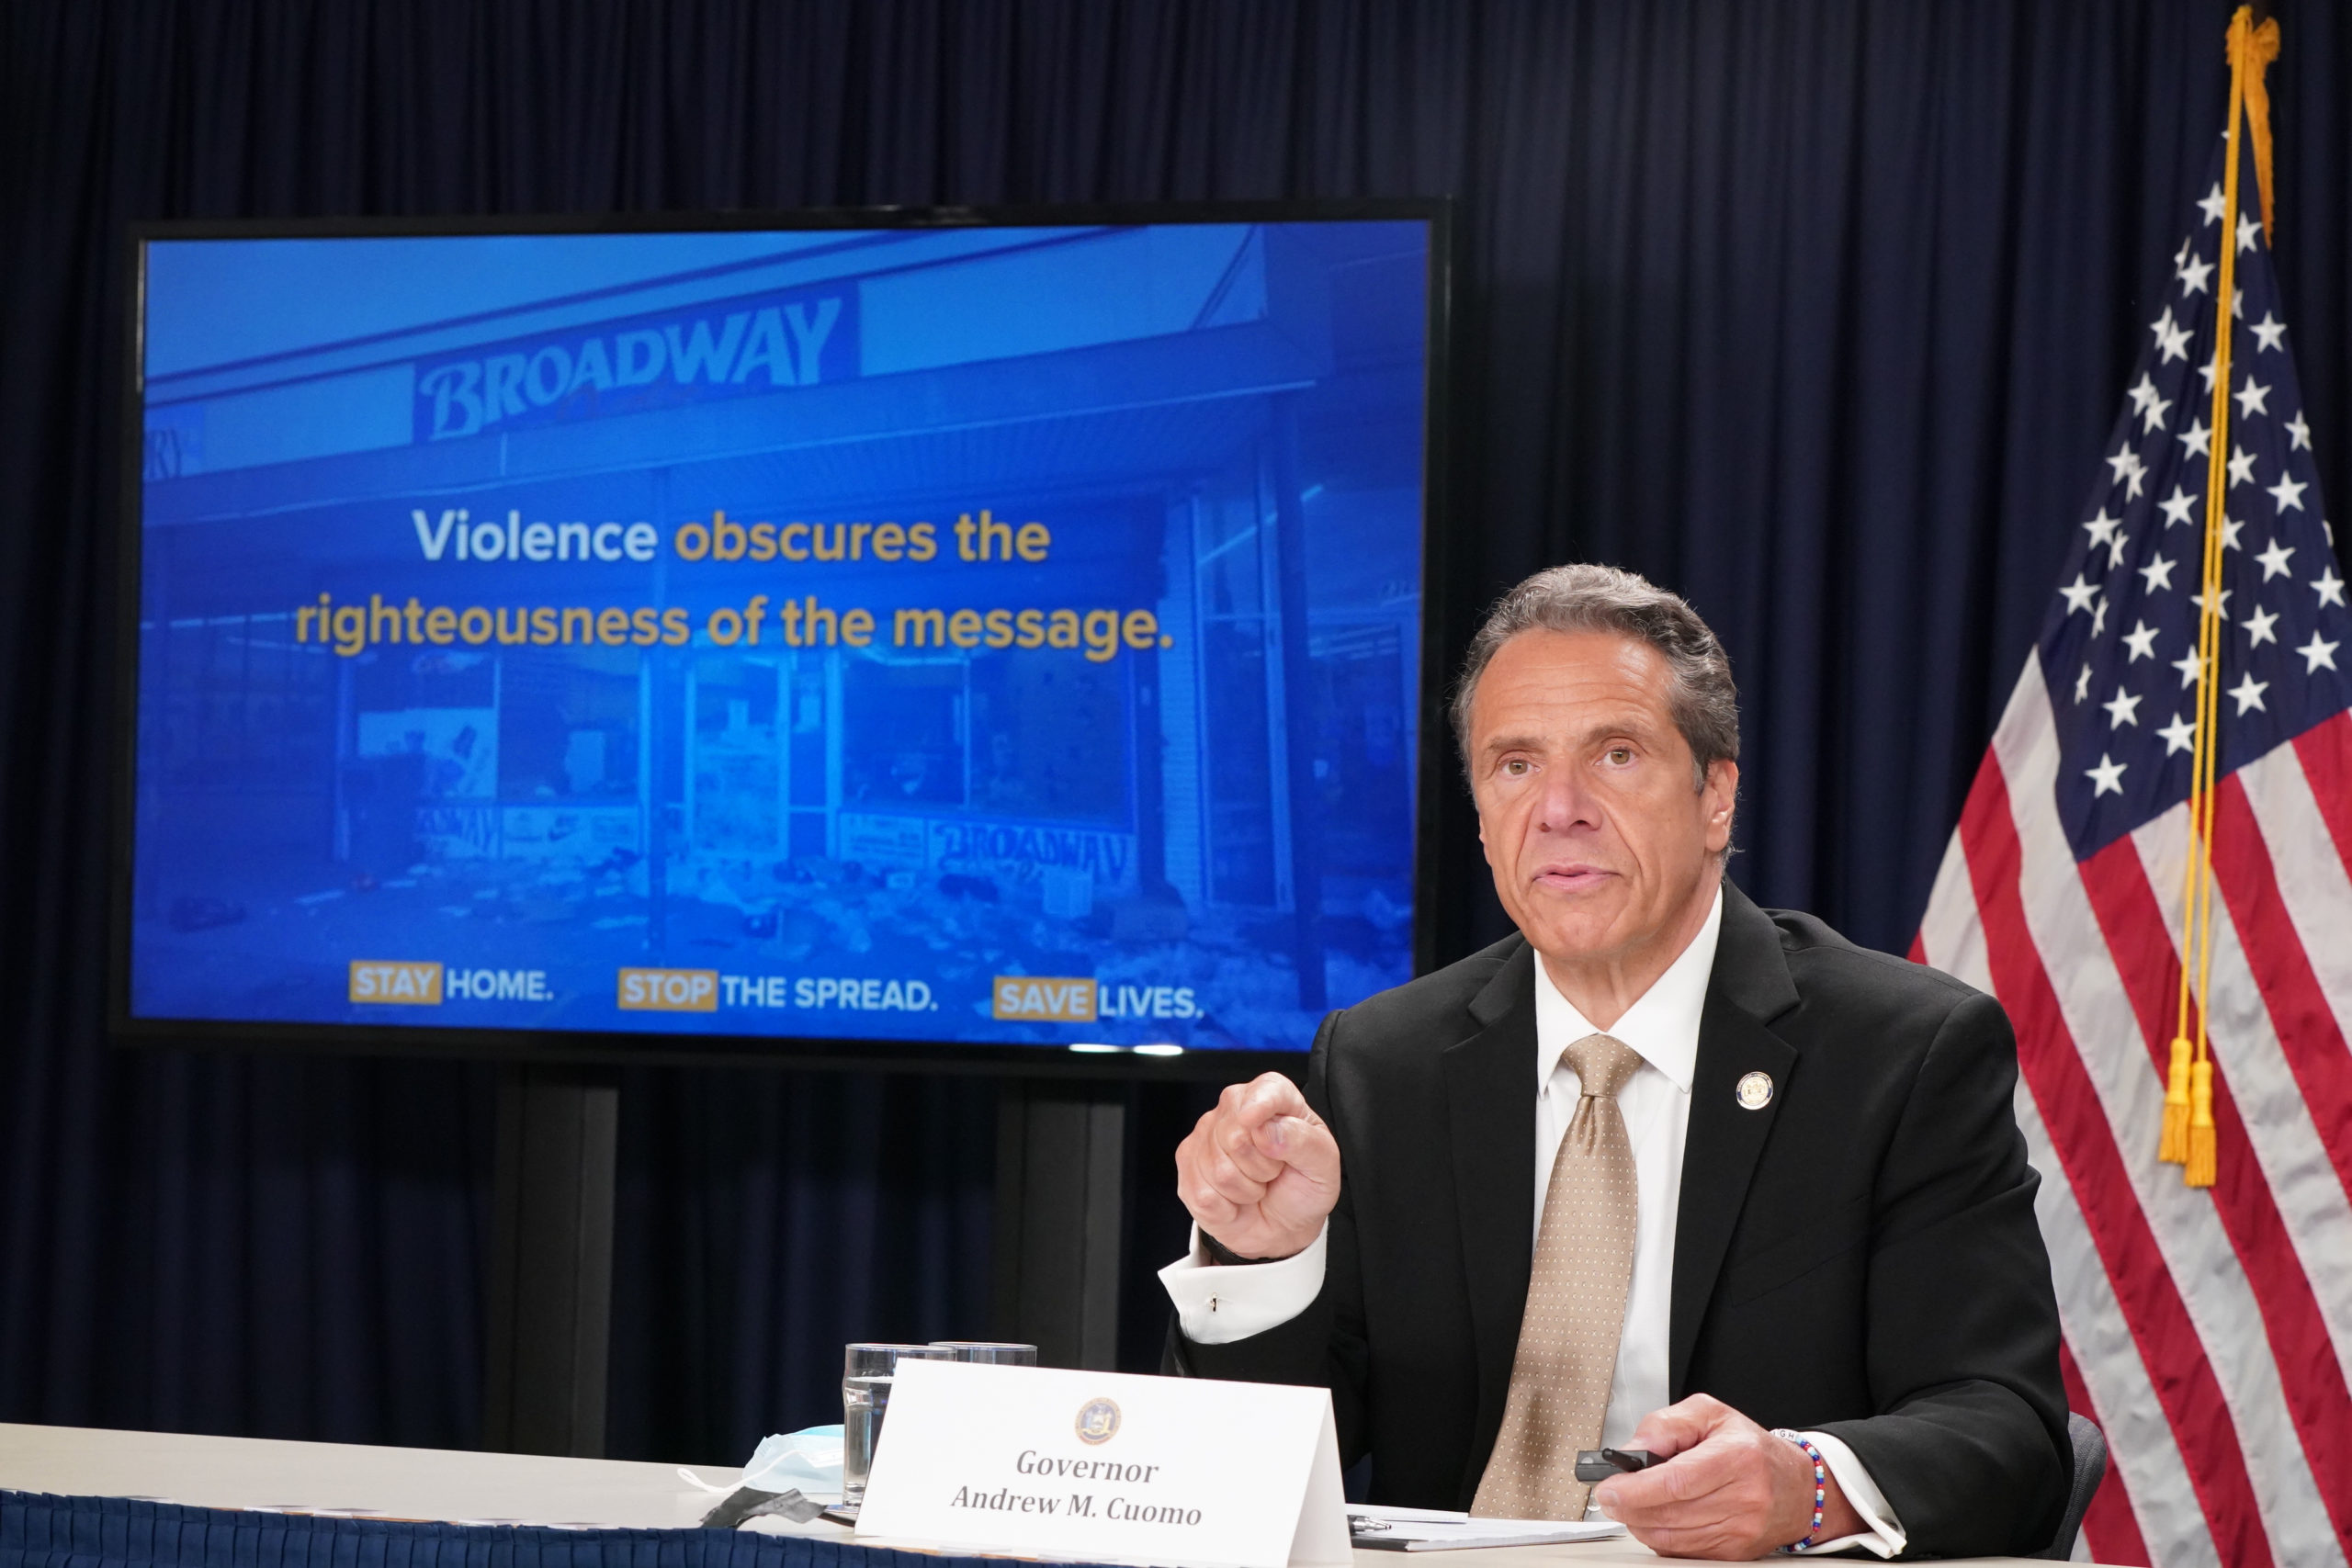 'Embarrassed' Cuomo In First Appearance Addresses Sexual Harassment Allegations But Refuses To Resign